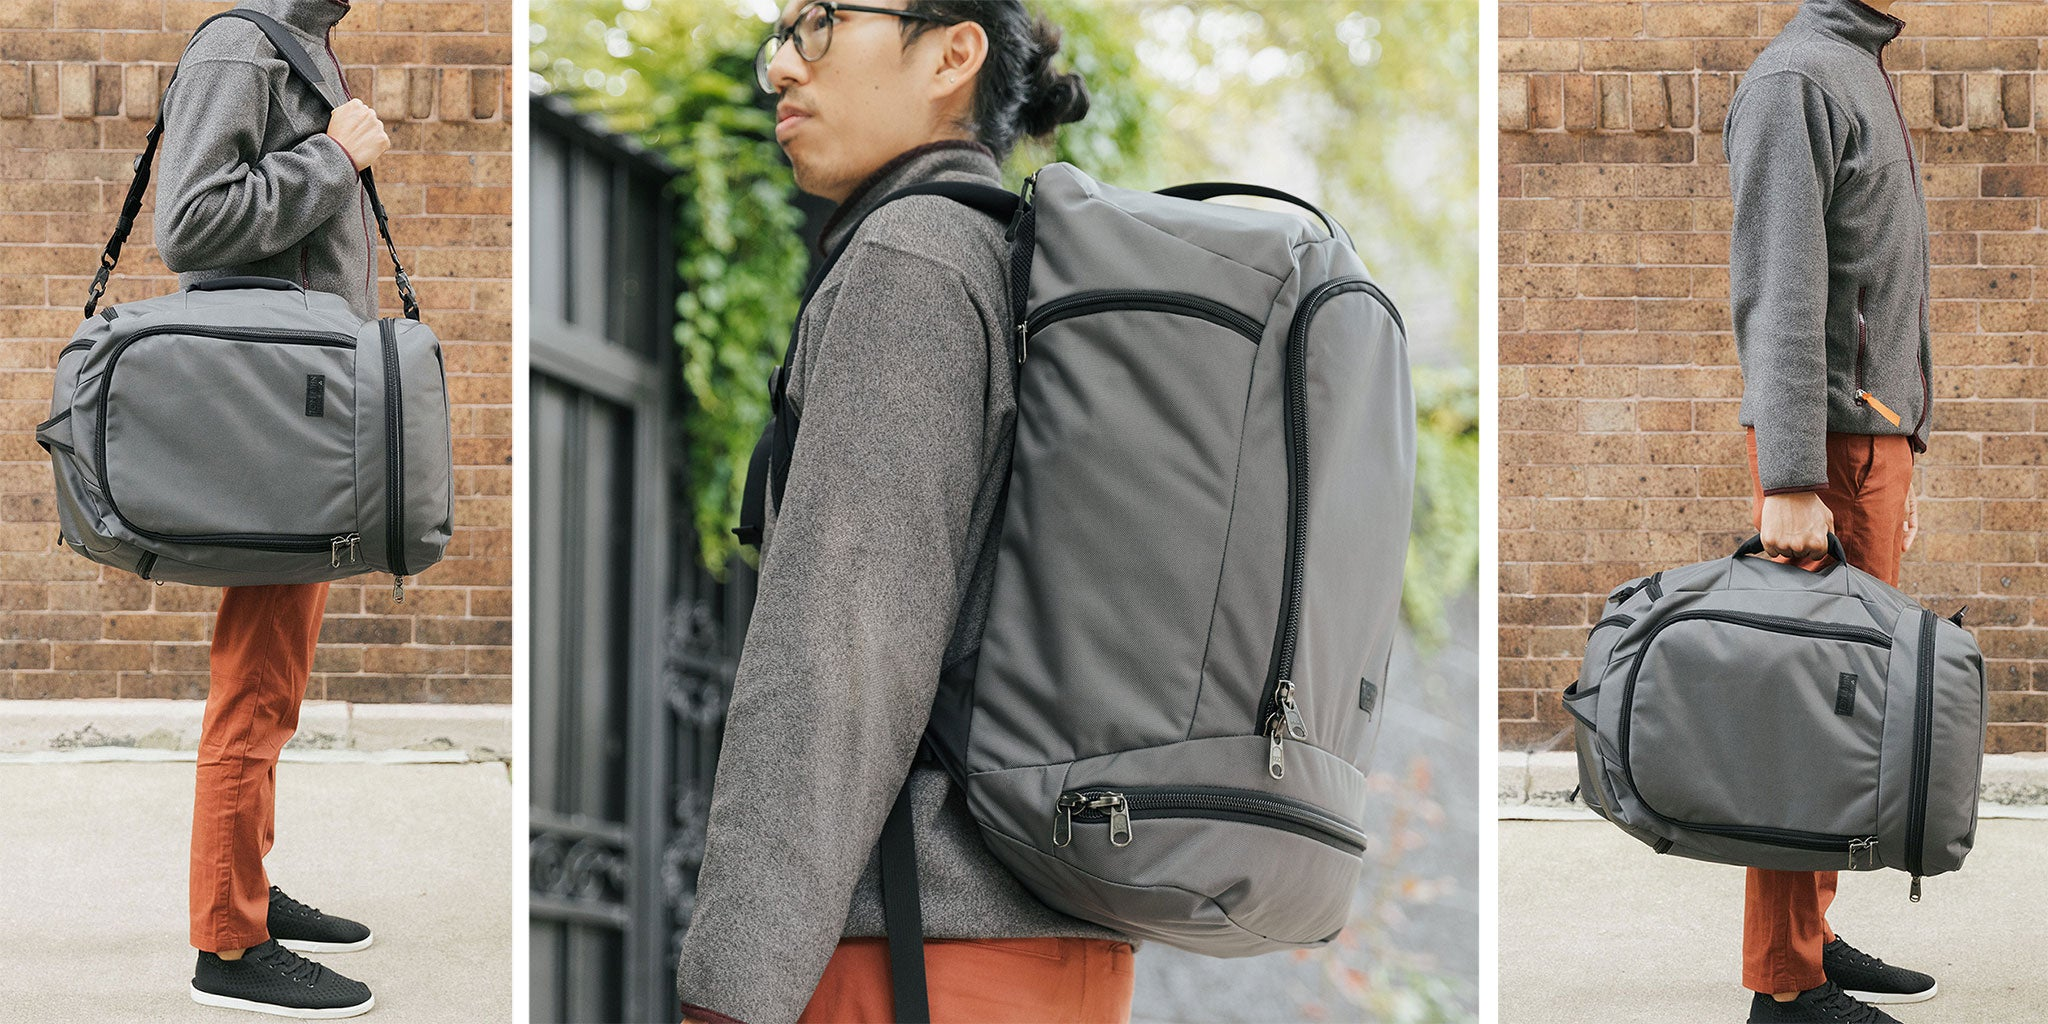 The Techonaut can be carried as a shoulder bag, duffel, or as a backpack.